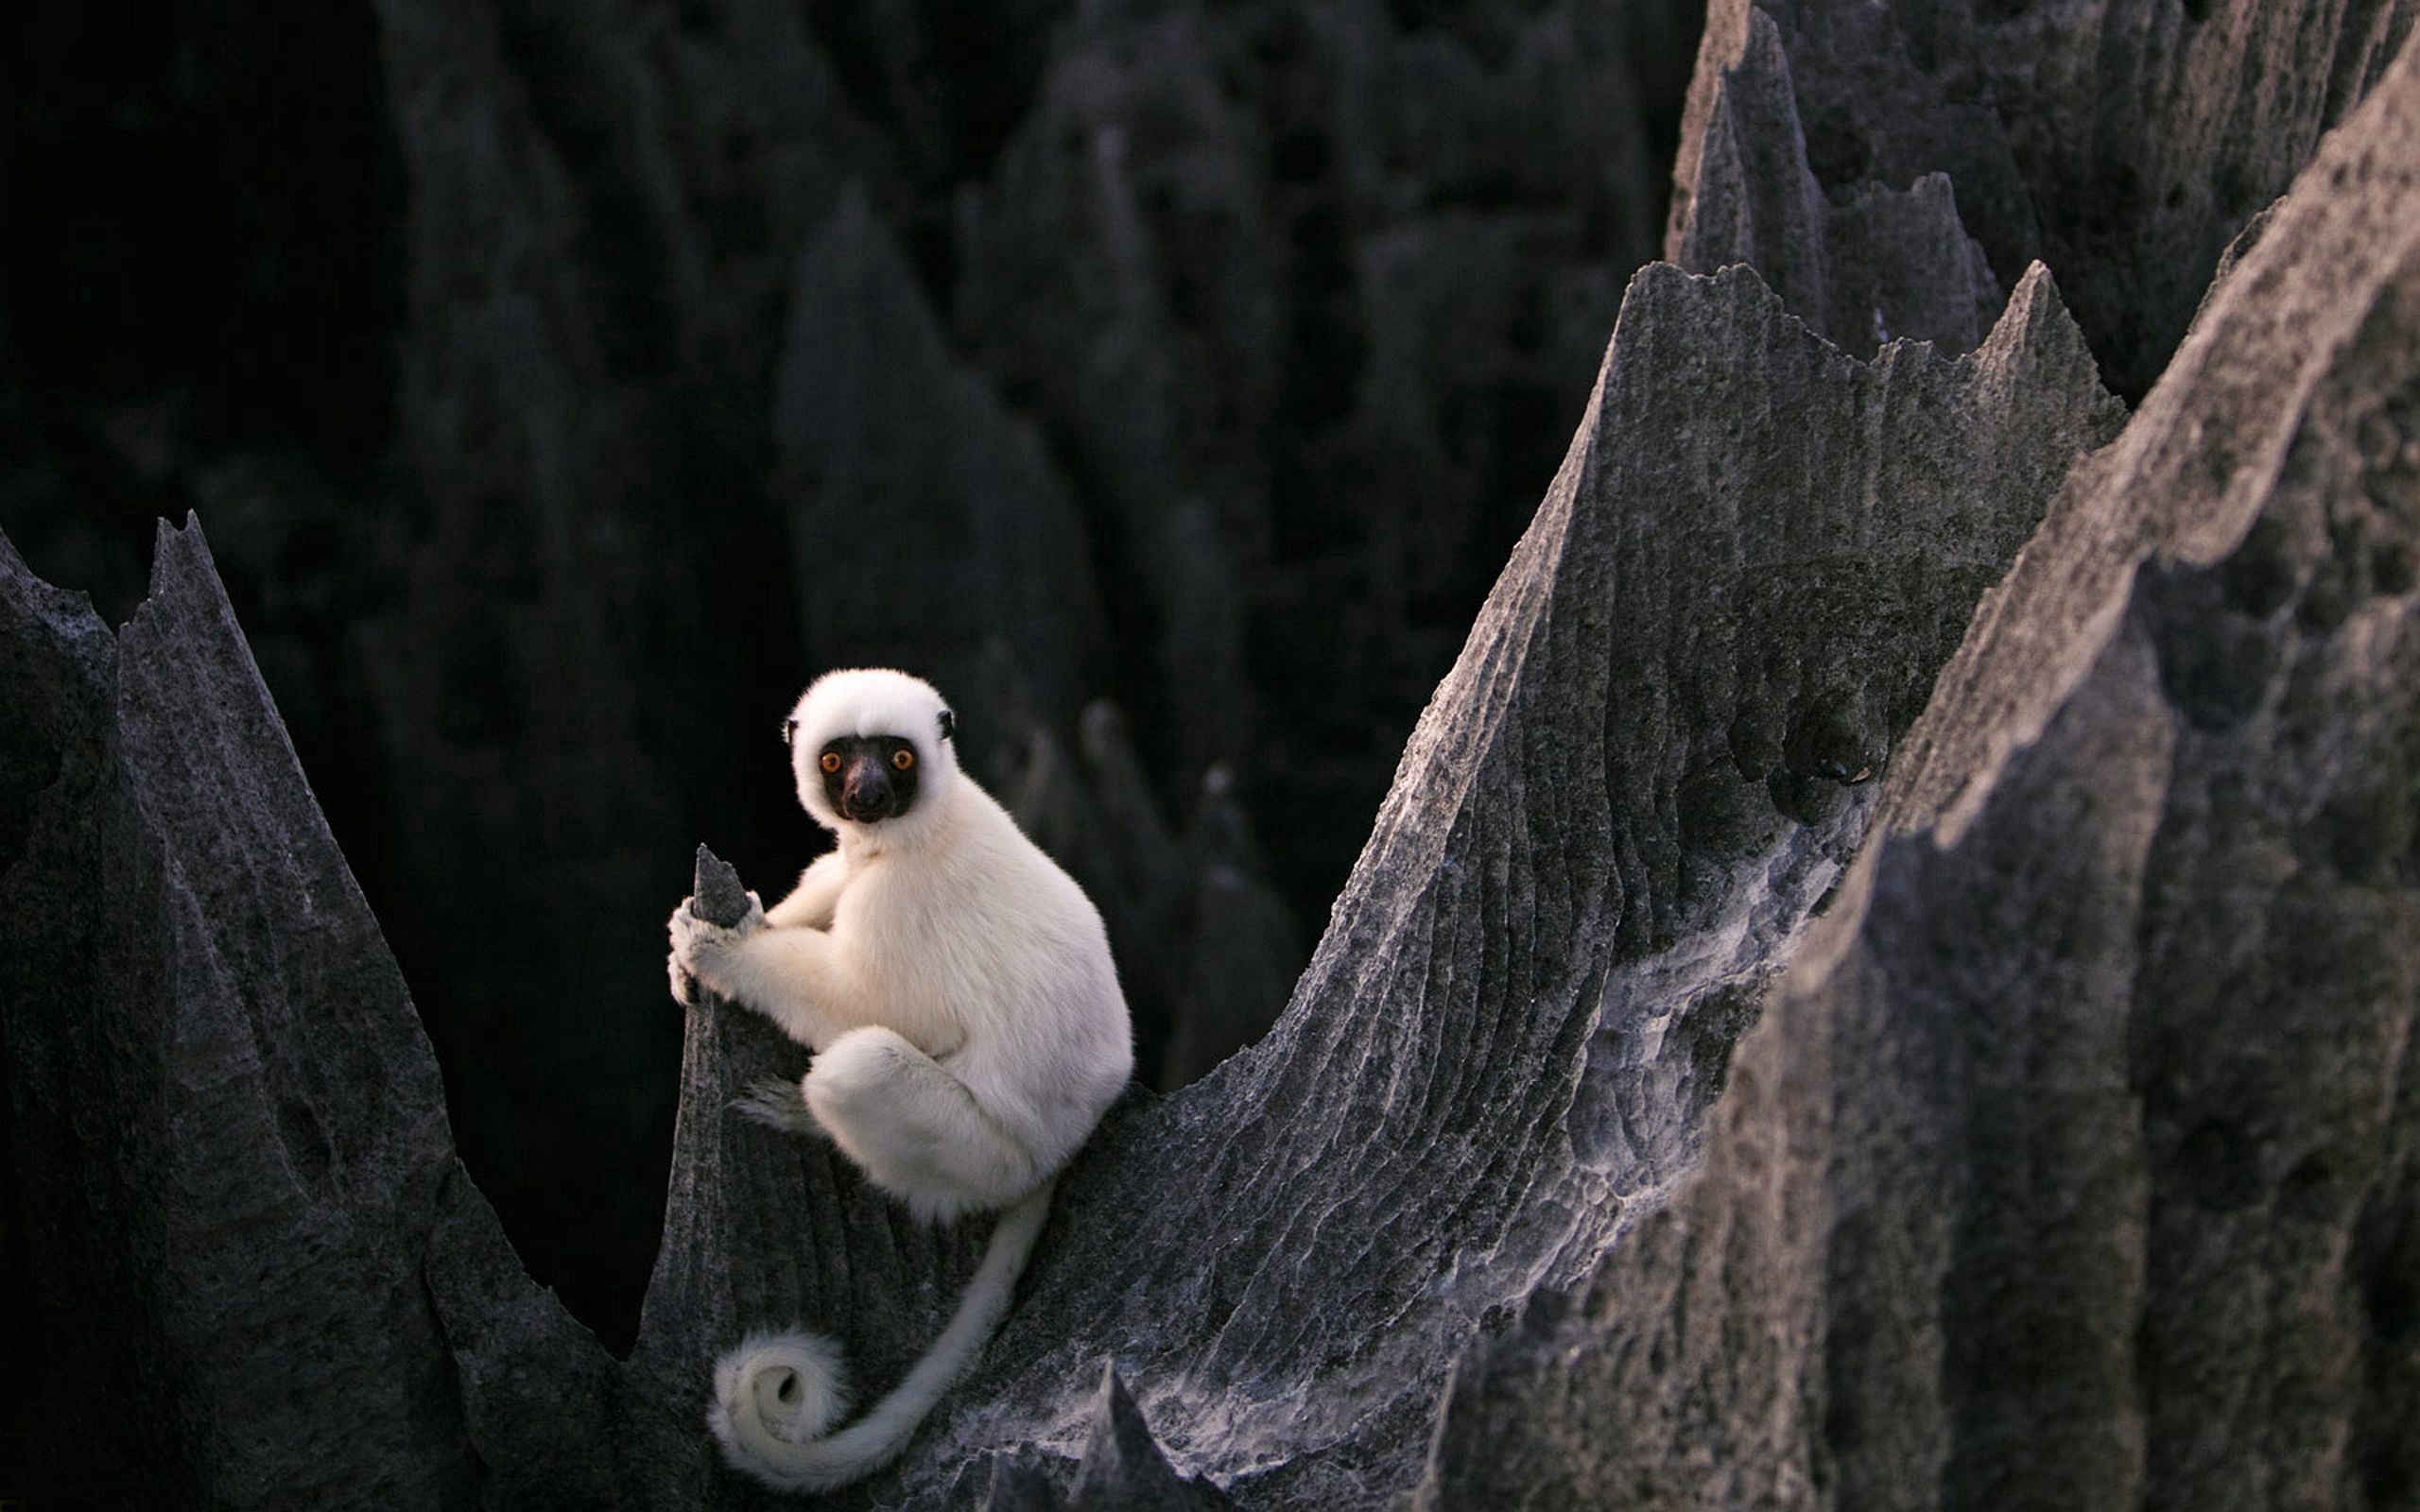 149355 download wallpaper Animals, Lemur, Sit, Stones screensavers and pictures for free